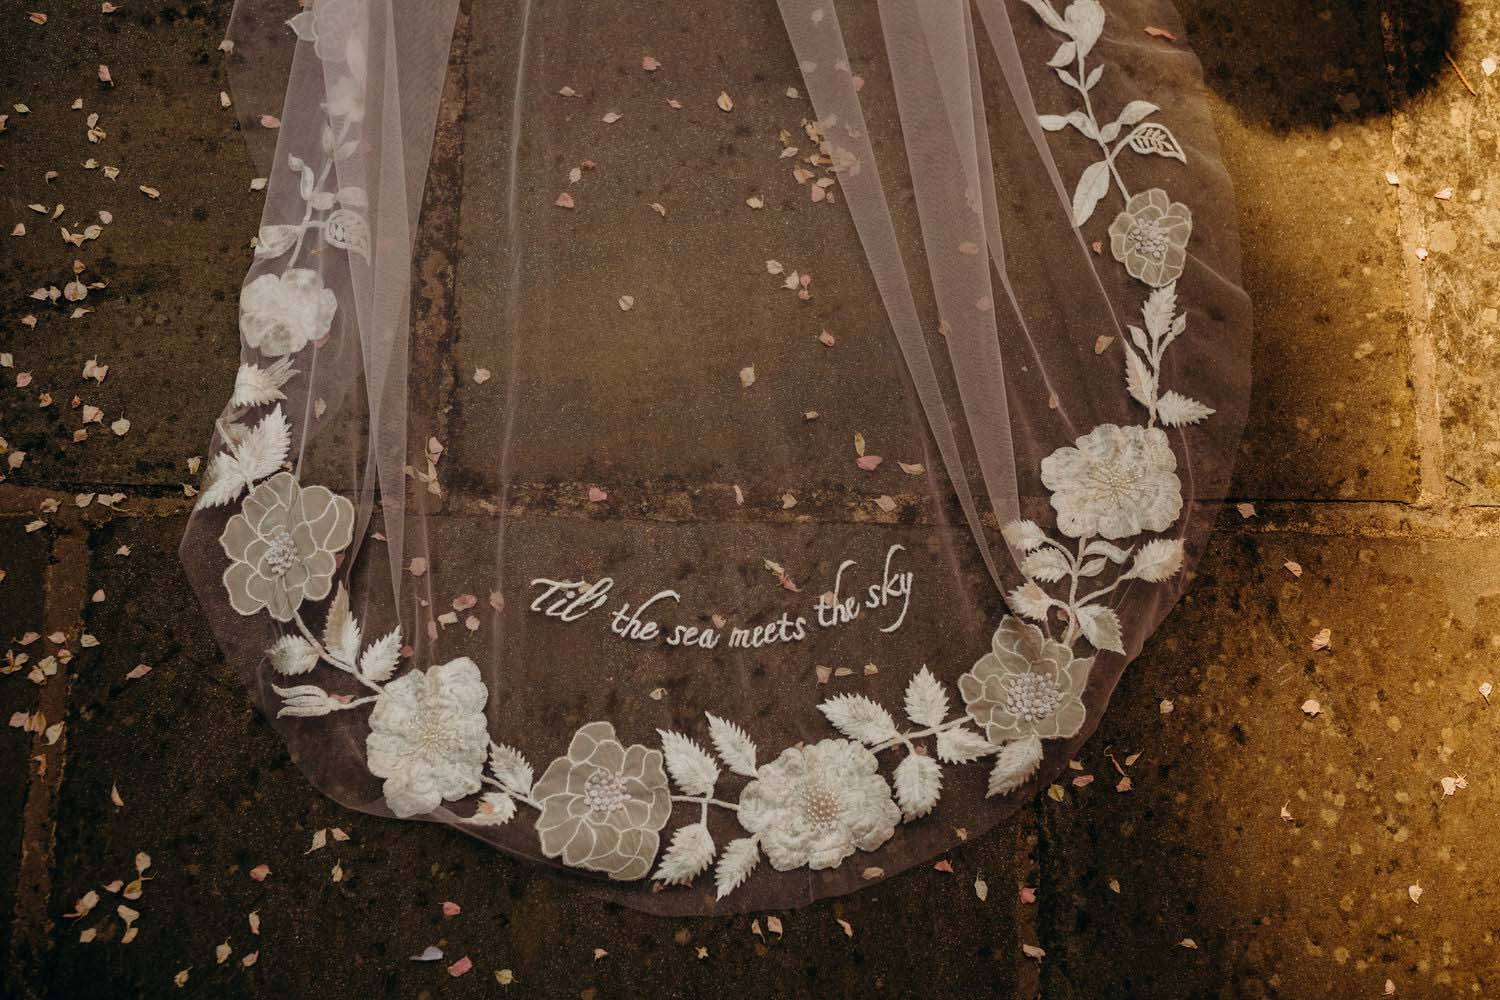 Hand stitched words on veil